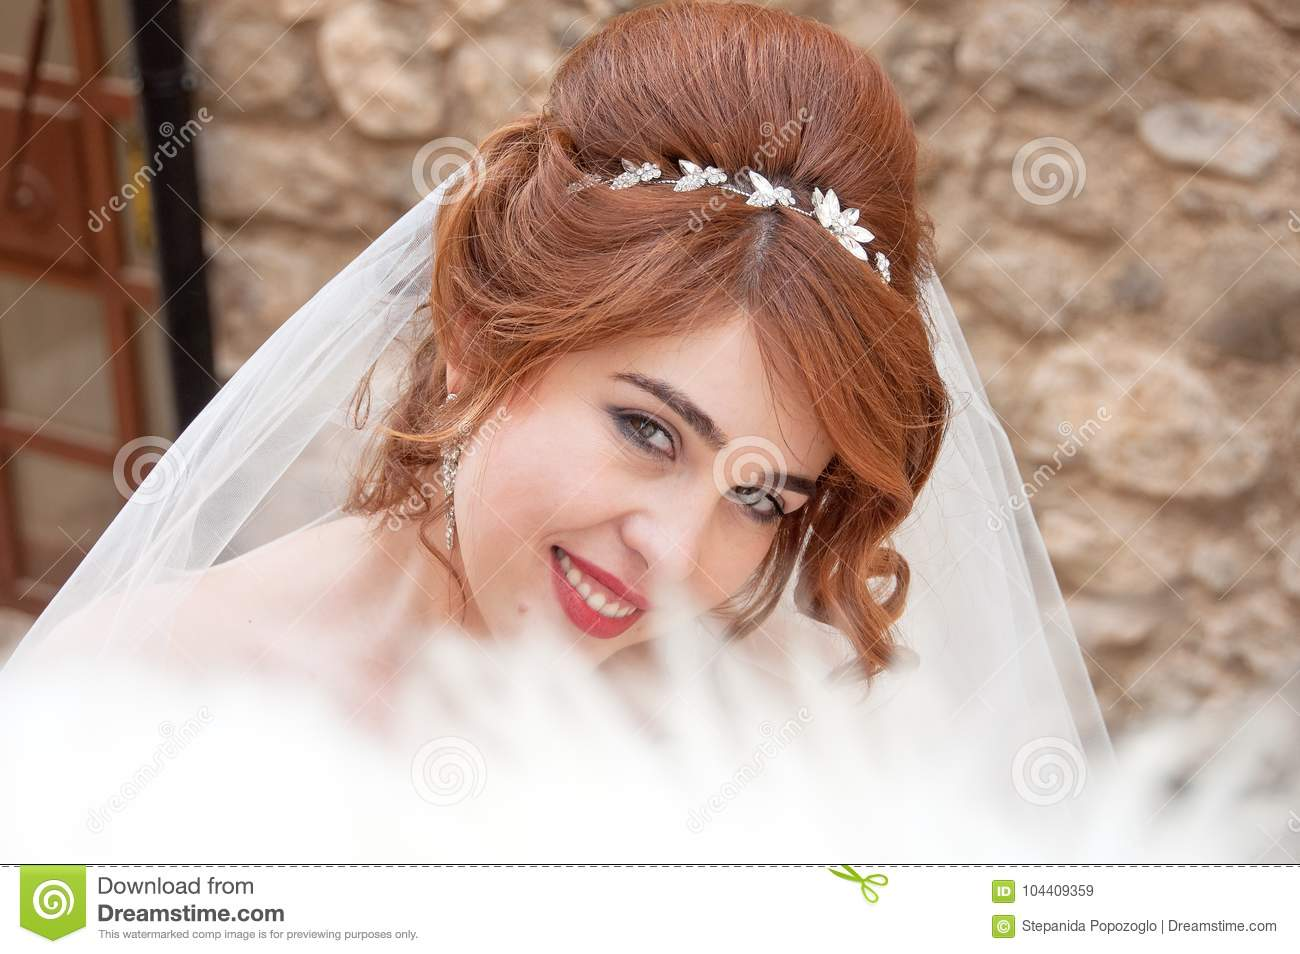 Bride With Fashion Wedding Hairstyle And Stylish Hair Accessory